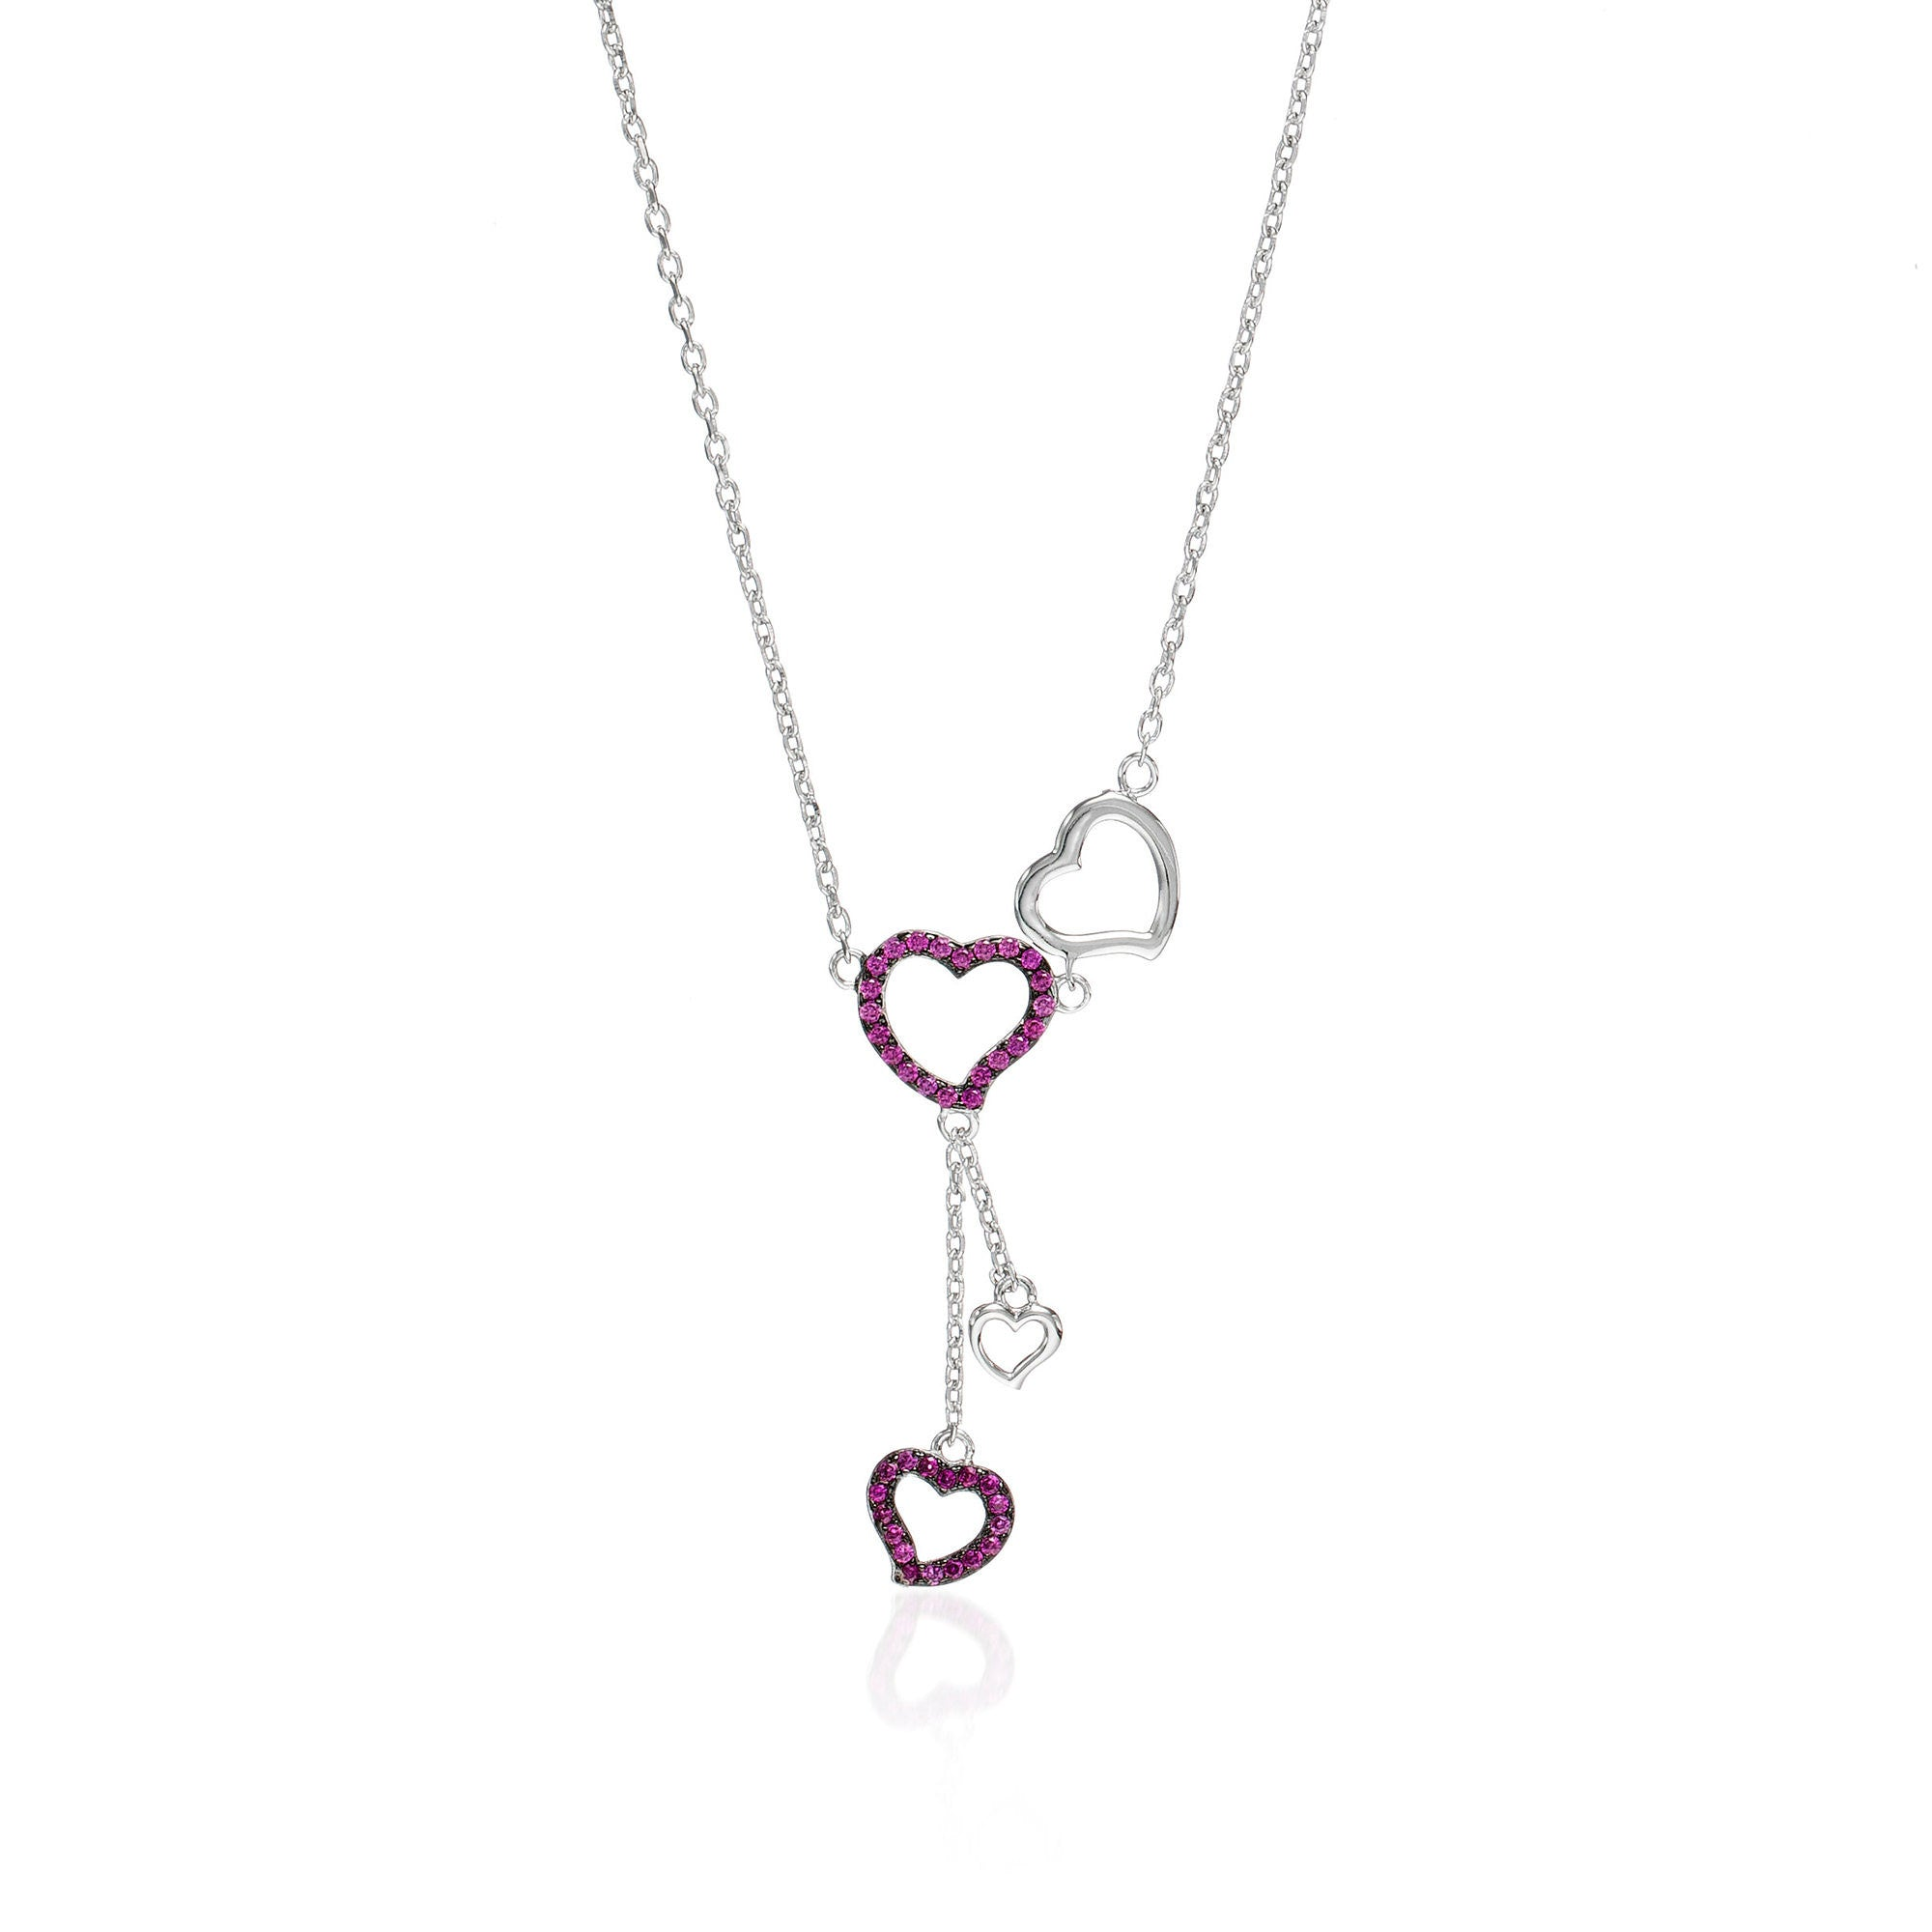 Love Struck Heart Necklace